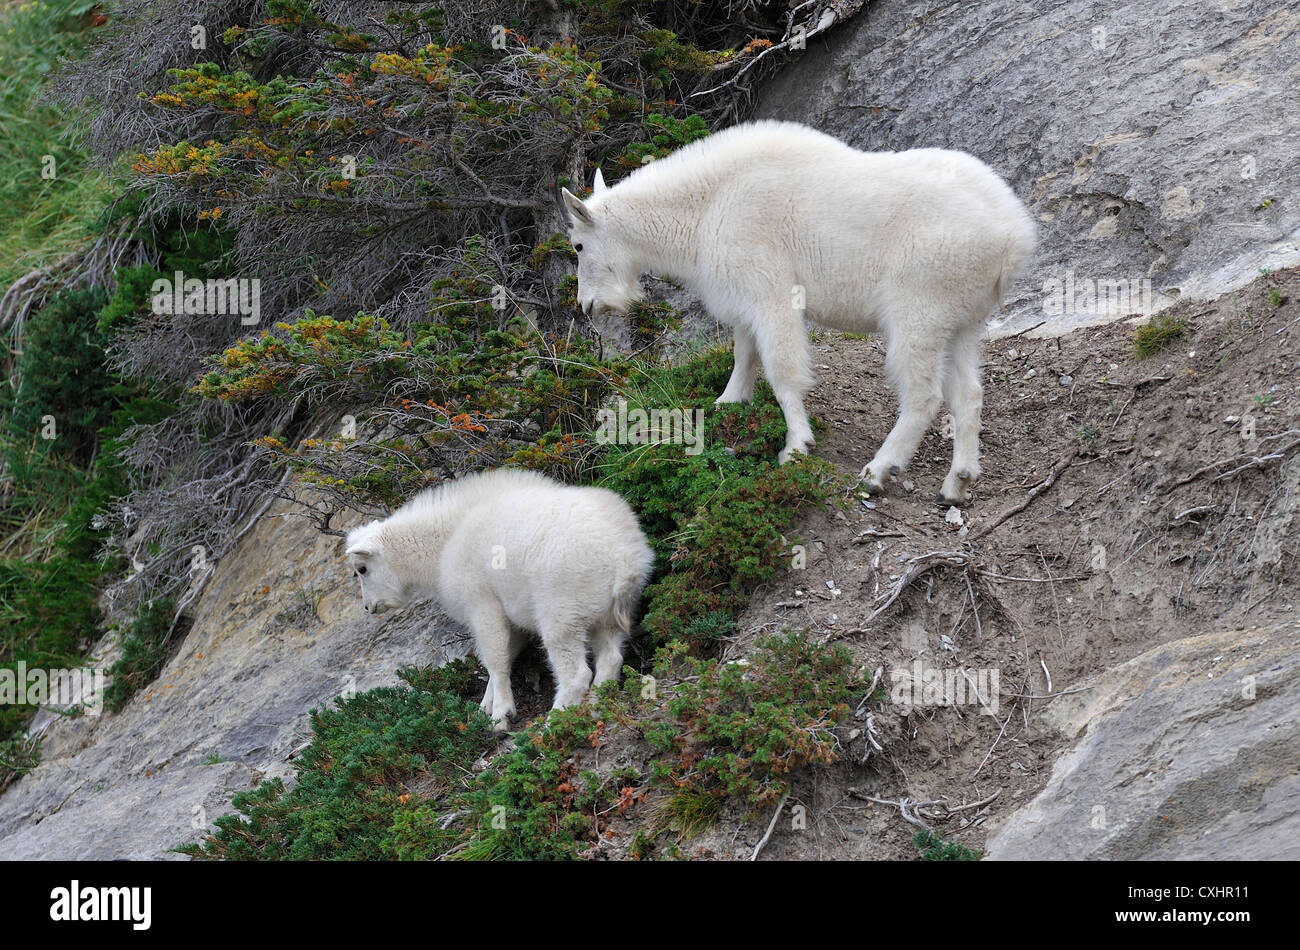 A mother mountain goat with her new baby. - Stock Image